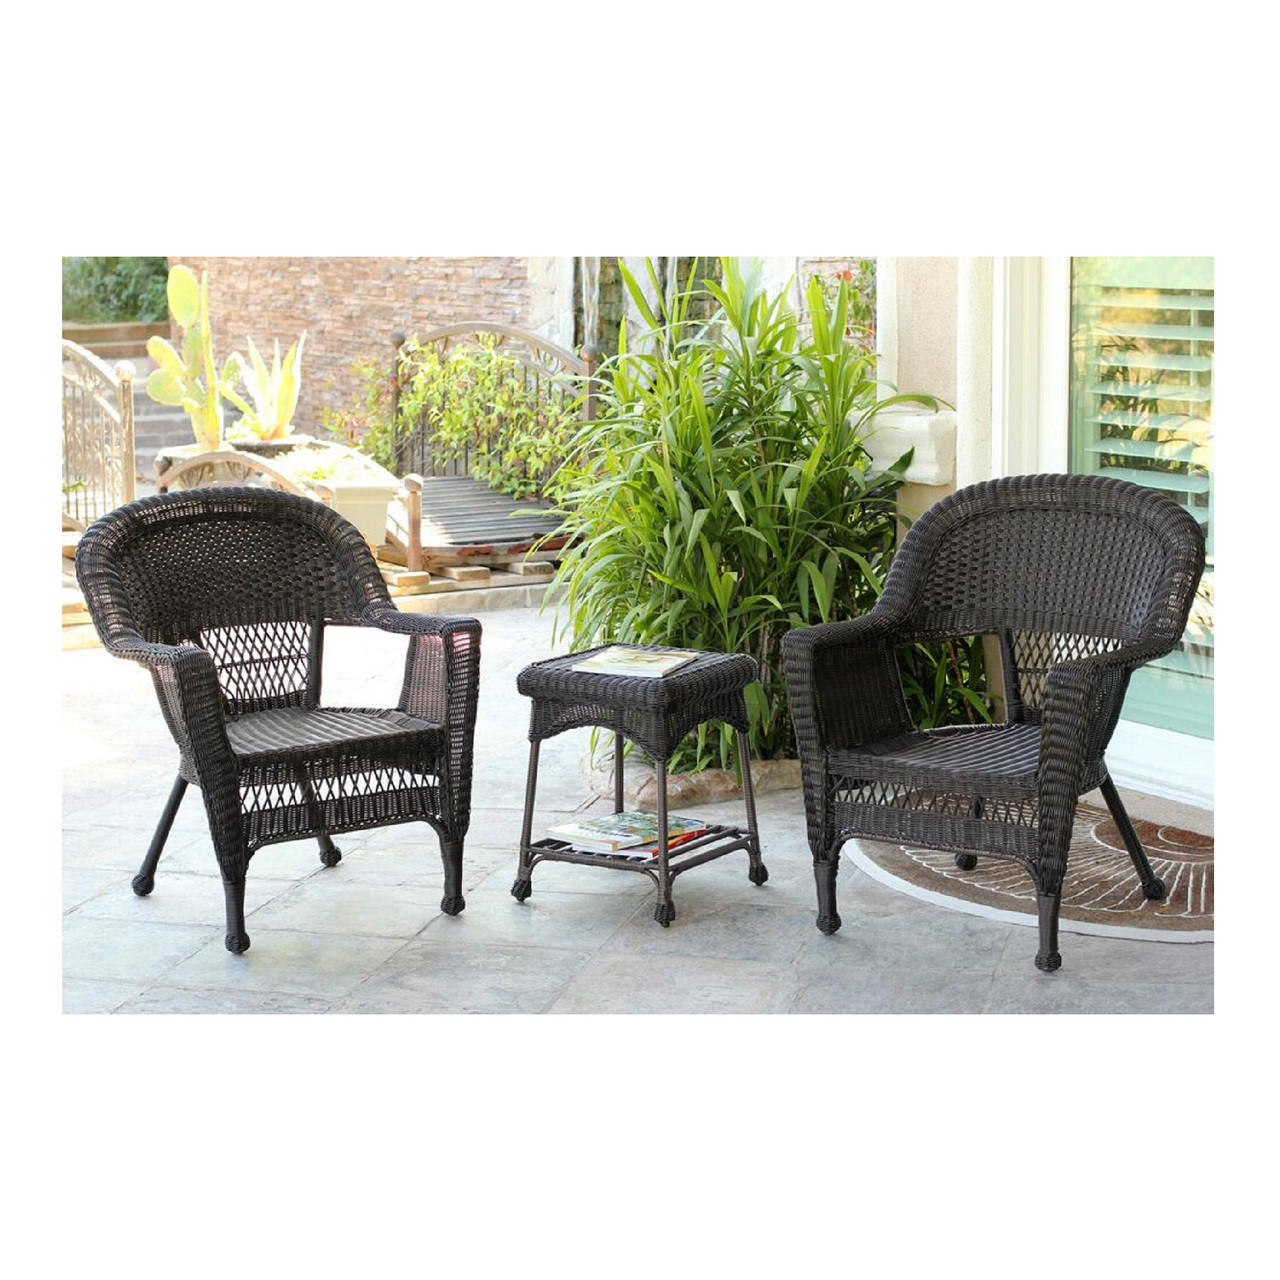 Exceptionnel 3 Piece Espresso Brown Resin Wicker Patio Chairs And End Table Furniture Set    31556048